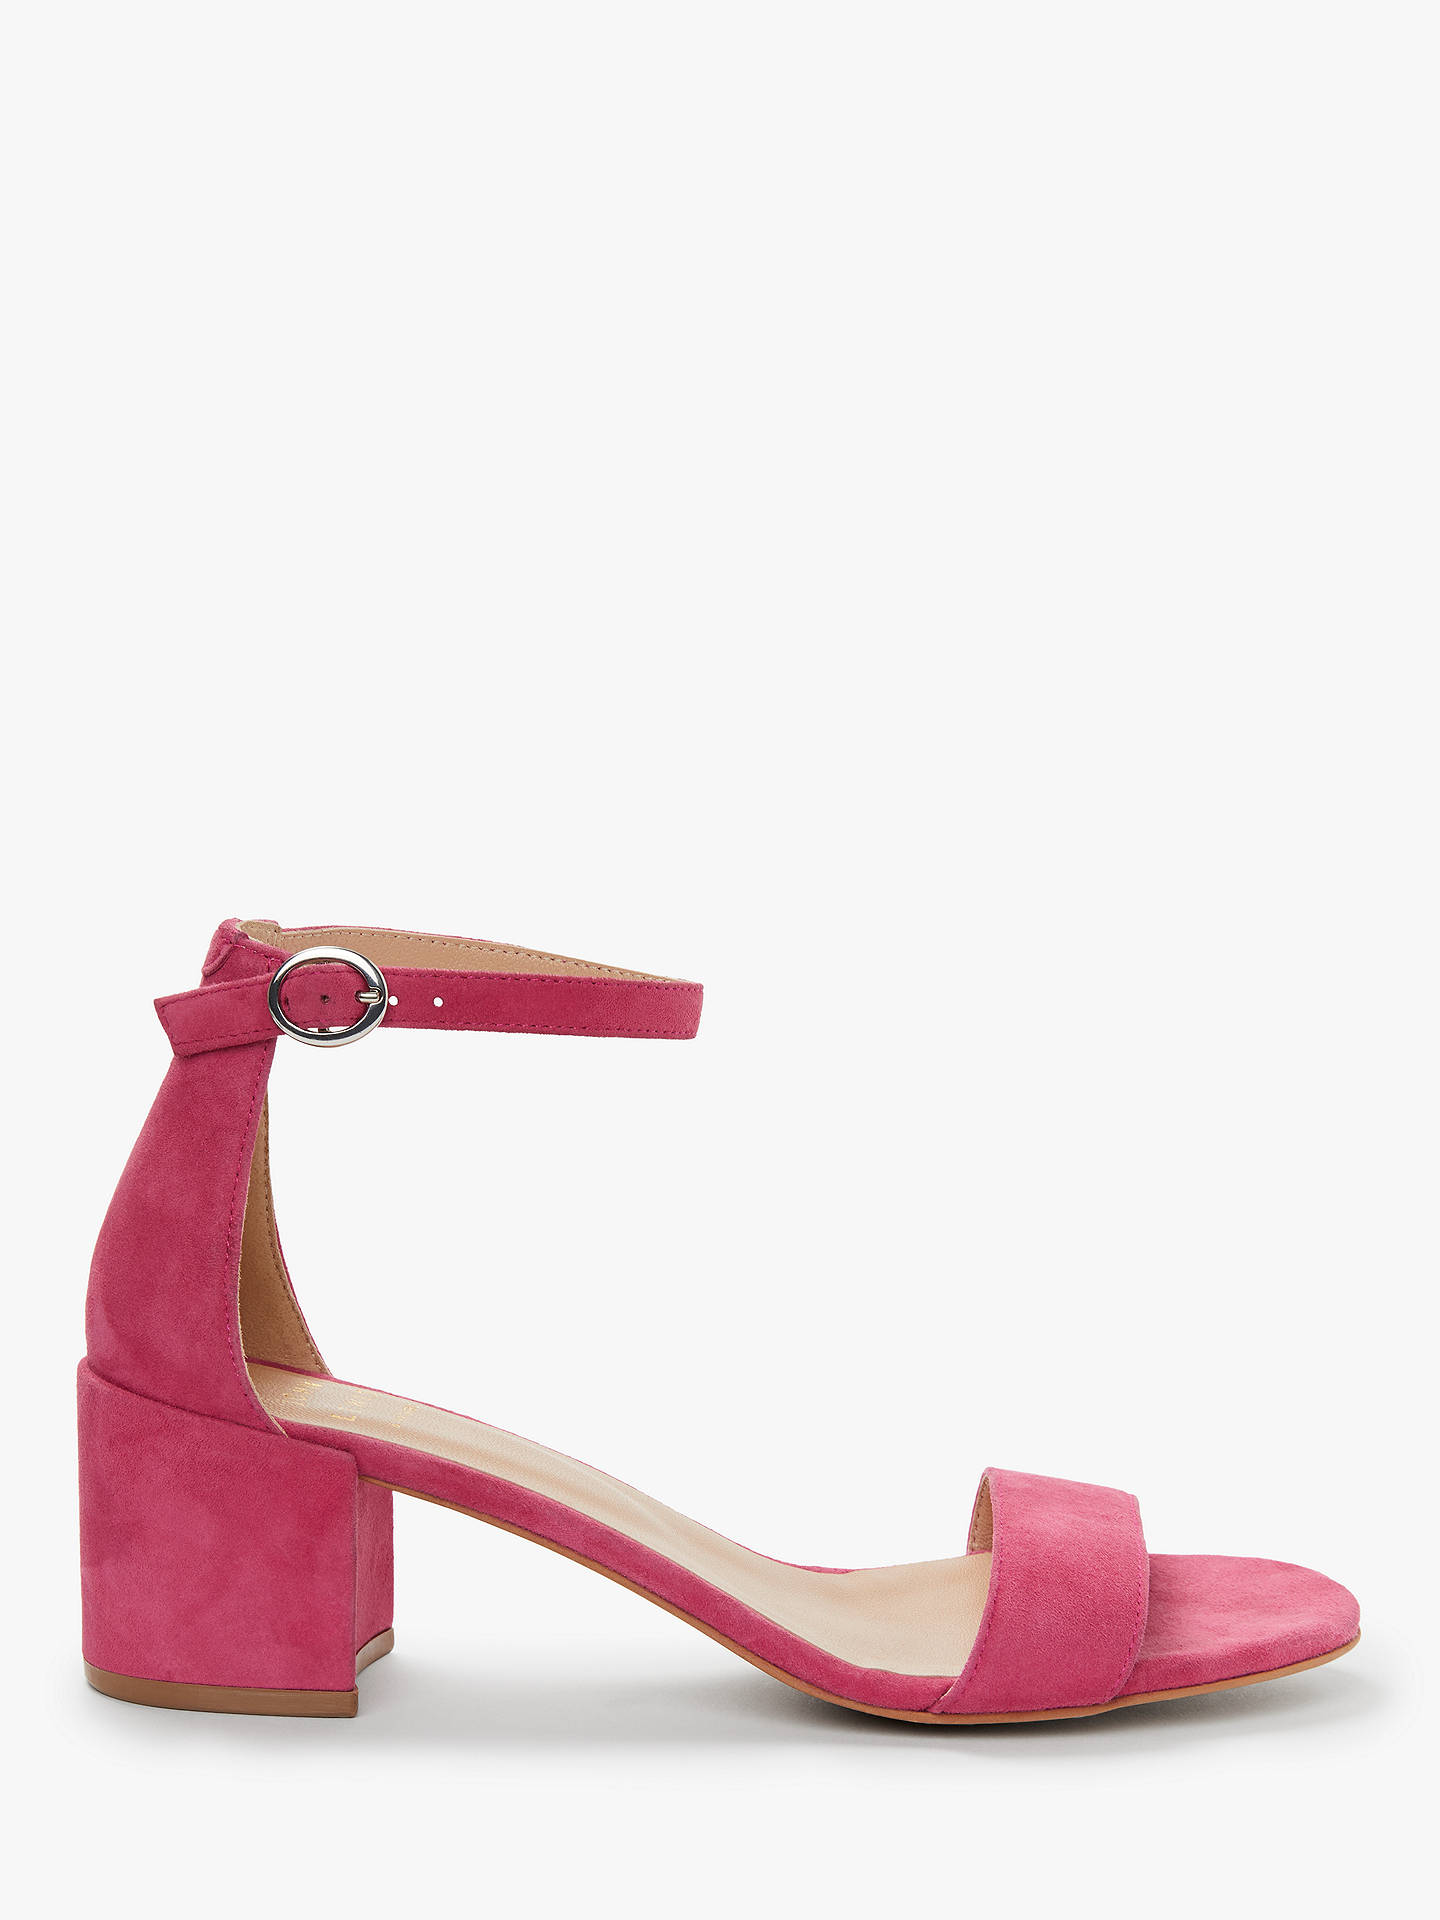 f19c2f2039 Buy John Lewis & Partners Clea Ankle Strap Block Heel Sandals, Hot Pink  Suede, ...